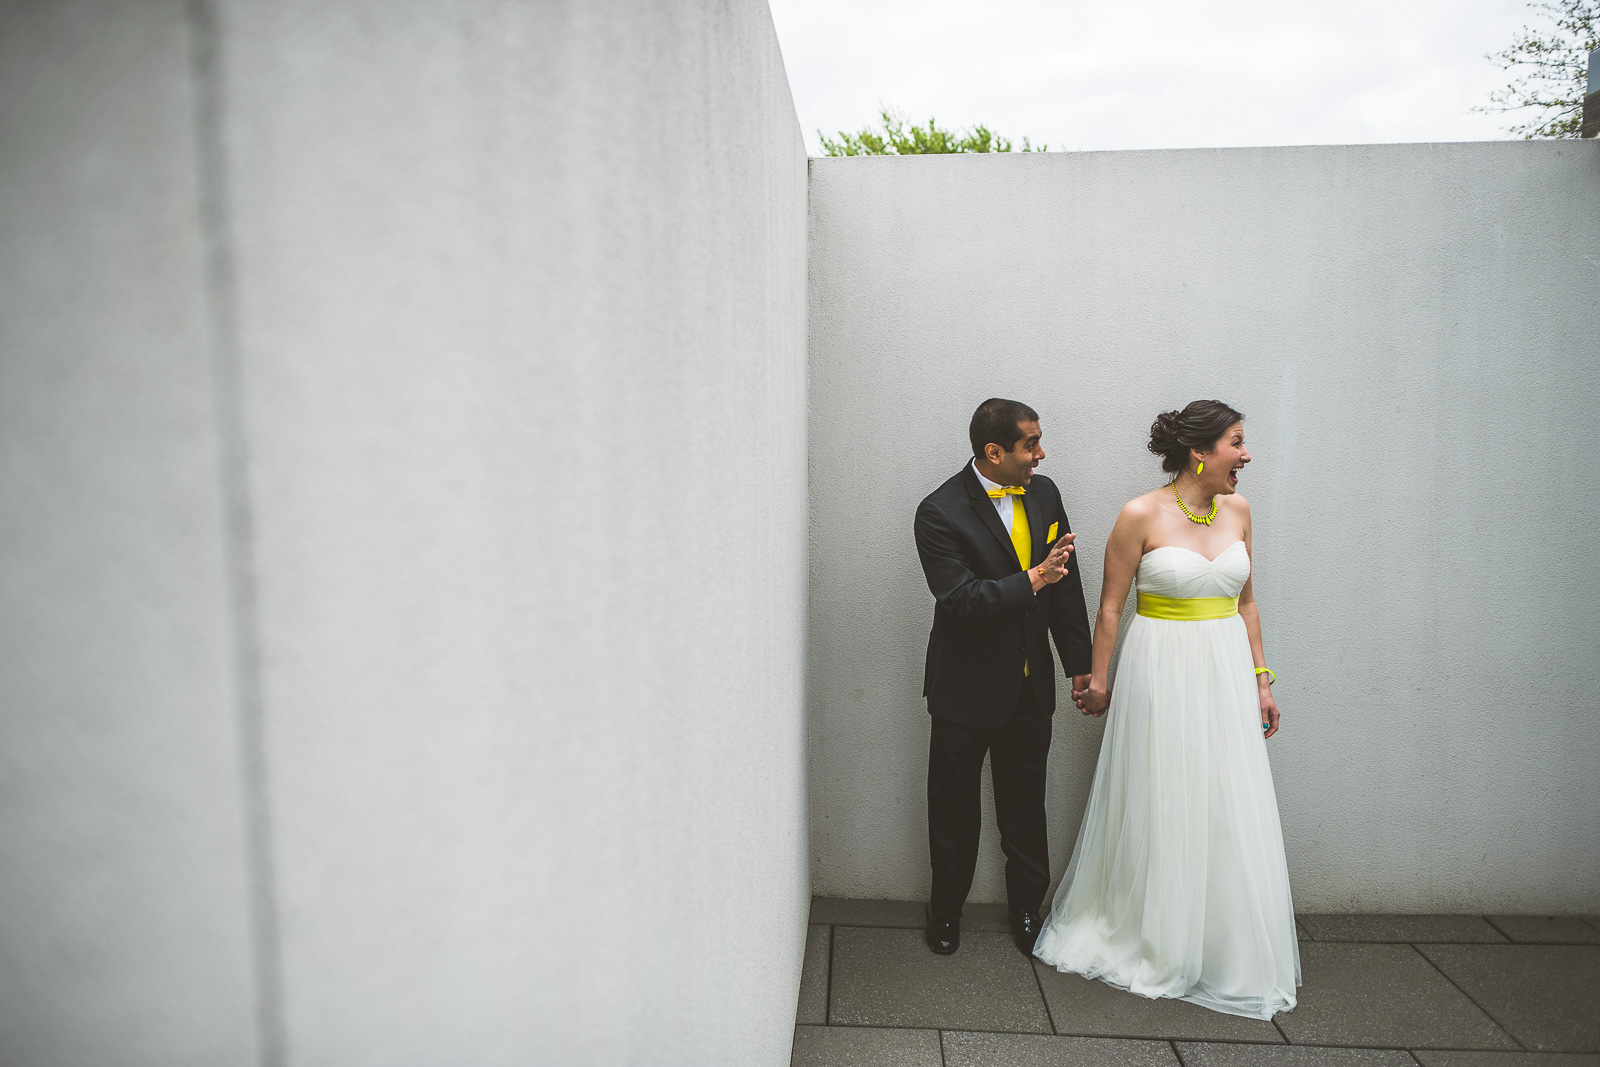 42 bride and groom photos - Jackie + Raj // Chicago Wedding Photography at Floating World Gallery